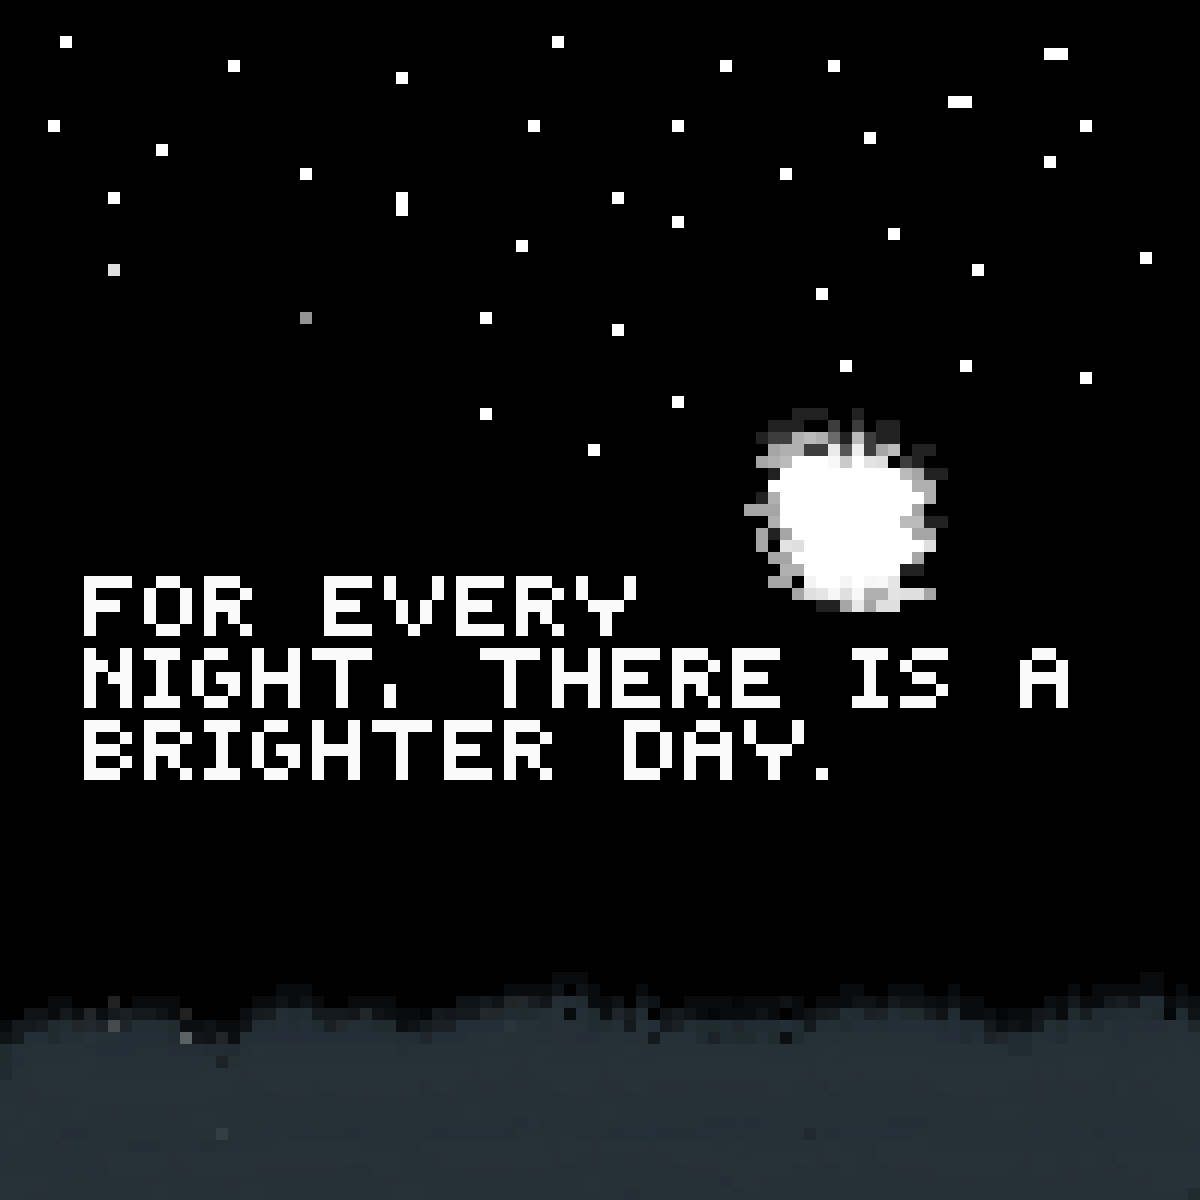 i hope this helps someone feel better :) by brightsky